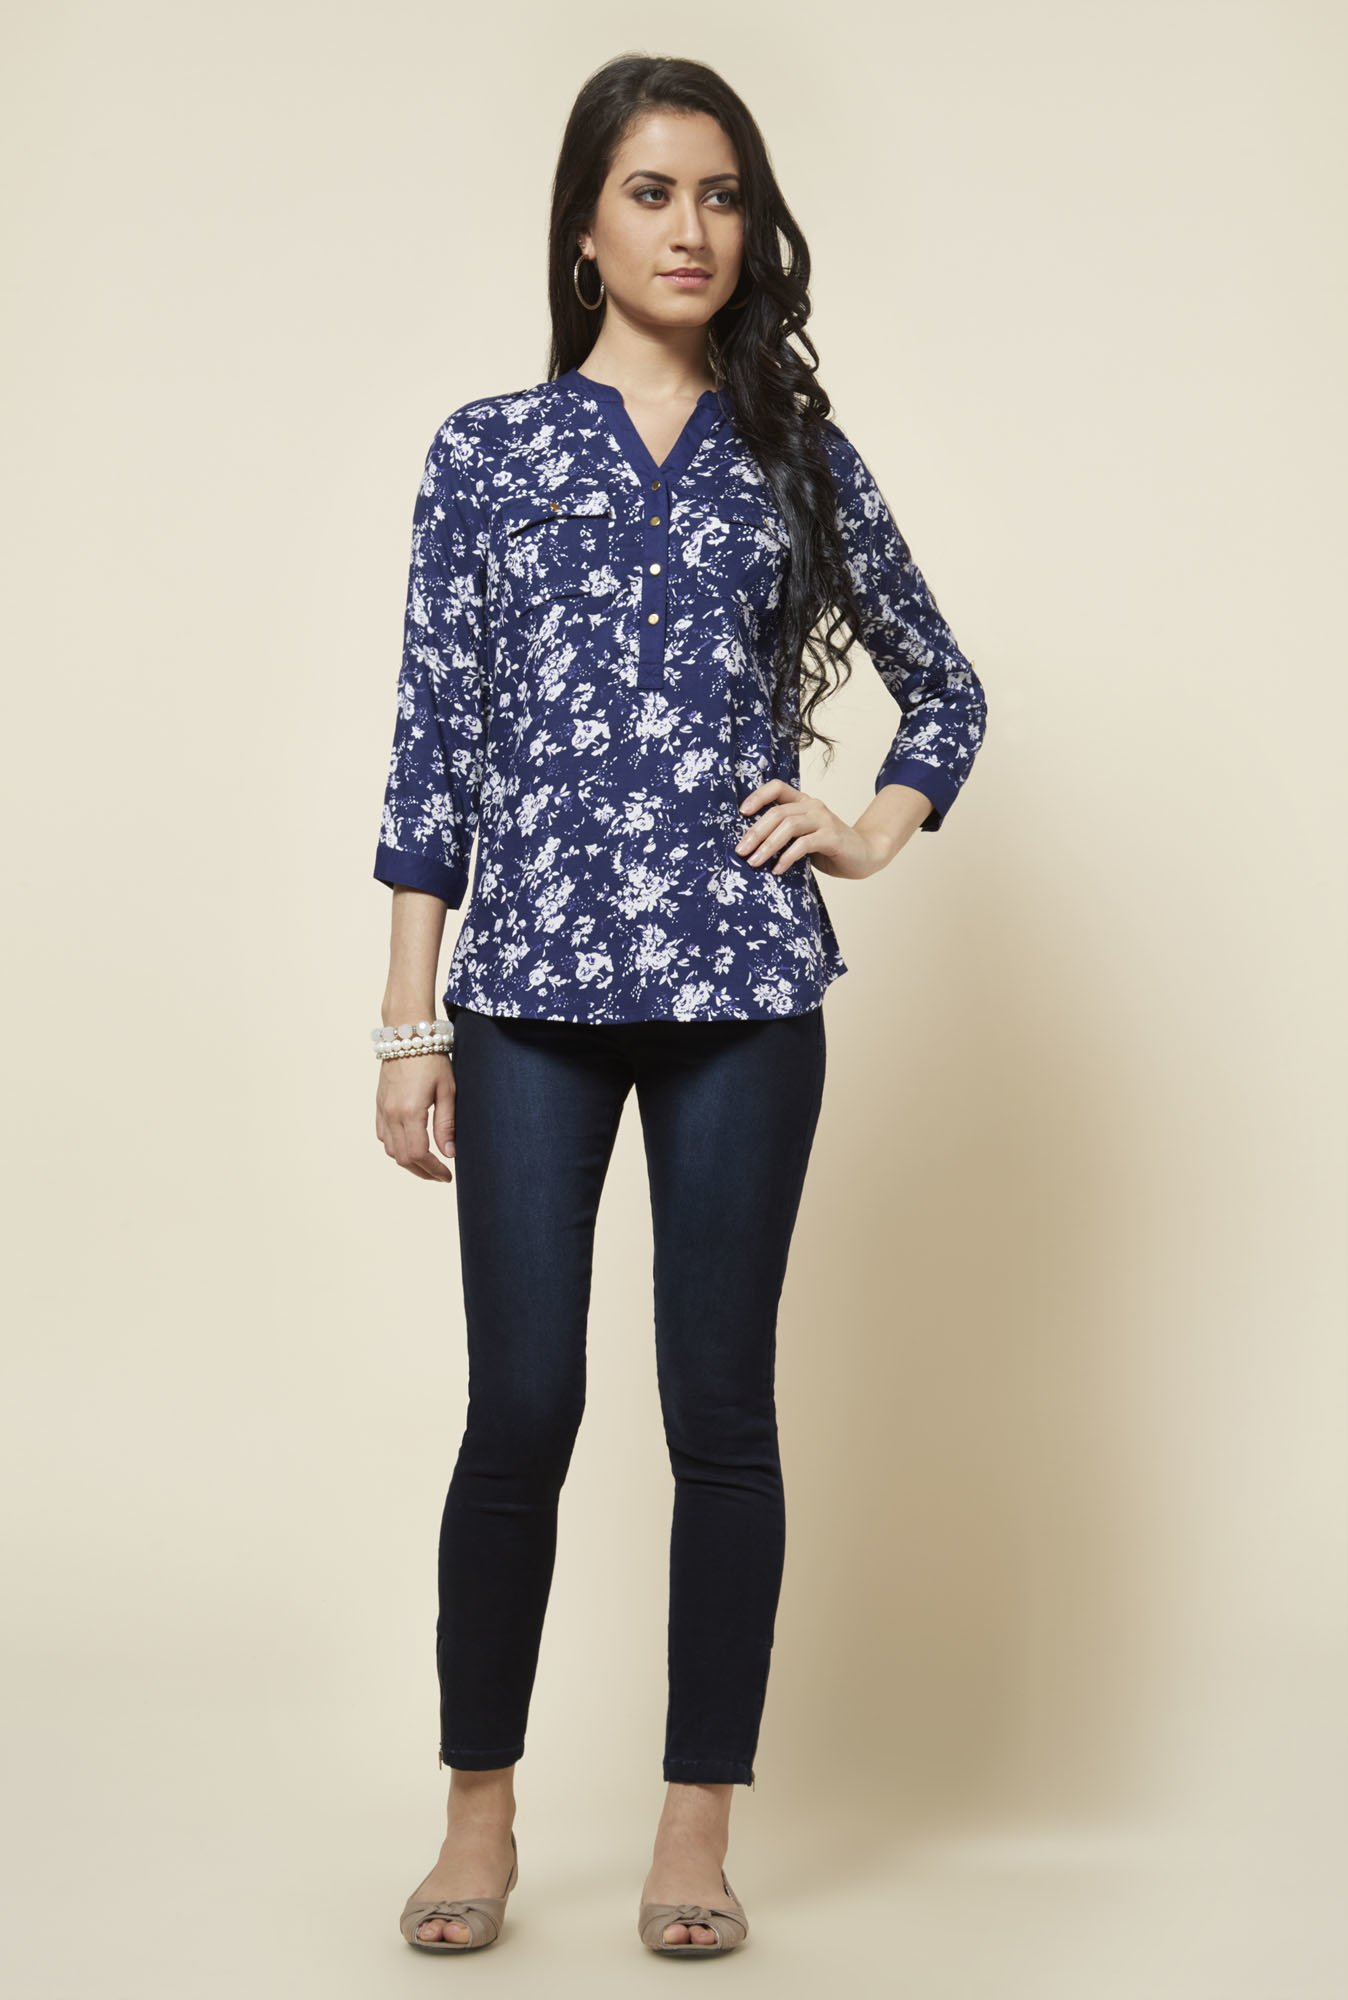 Zudio Navy Floral Printed Top